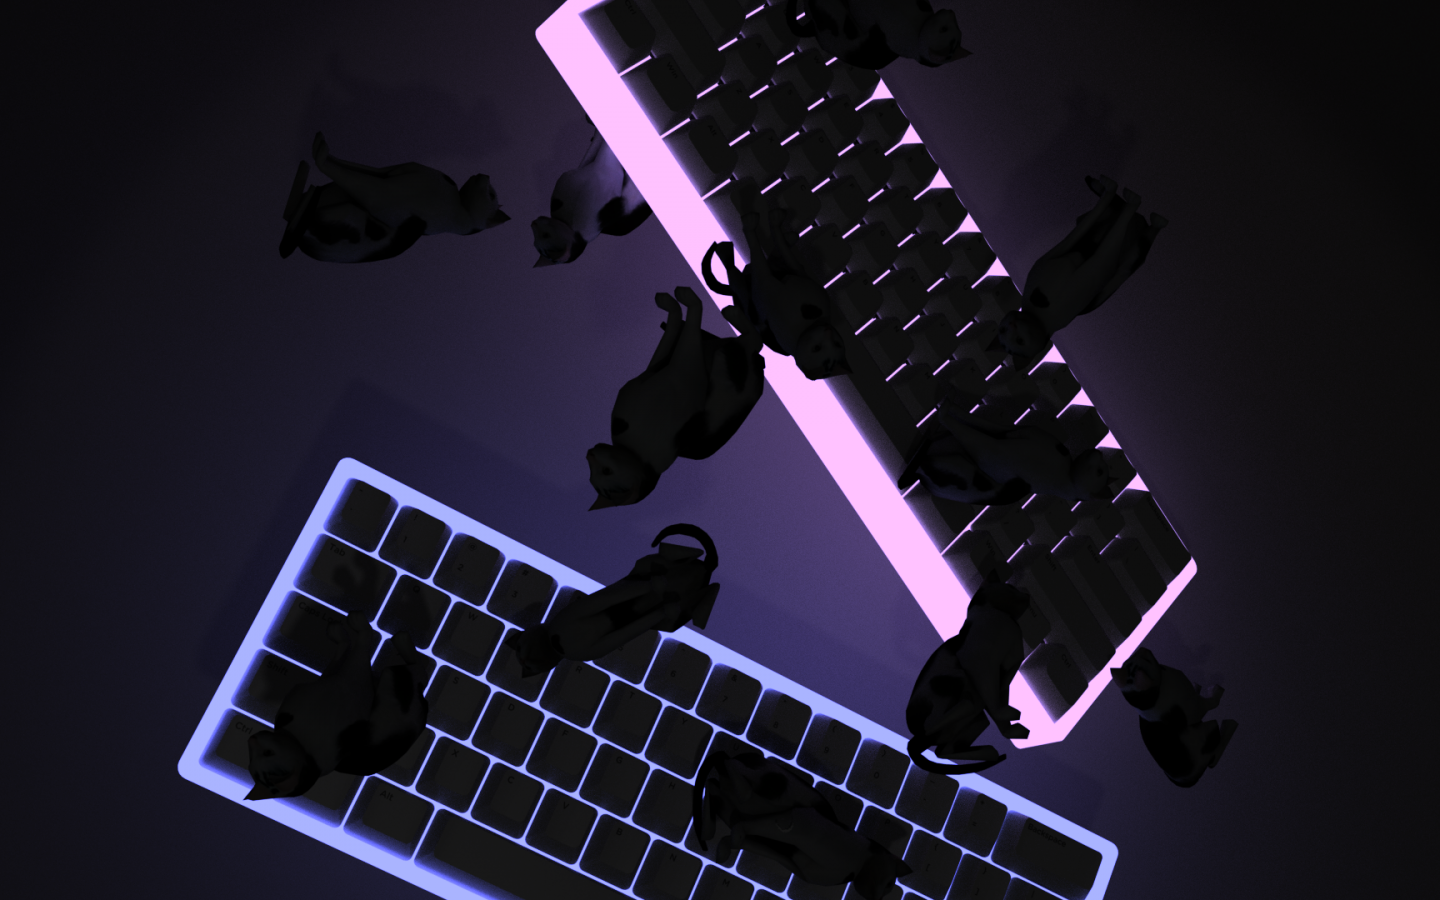 Free Download 60 Keyboards Falling With Cats 4k Aesthetic Wallpaper 1920x1080 For Your Desktop Mobile Tablet Explore 51 Aesthetic 4k Wallpapers Aesthetic 4k Wallpapers Aesthetic Wallpapers 4k Night Aesthetic 4k Wallpapers